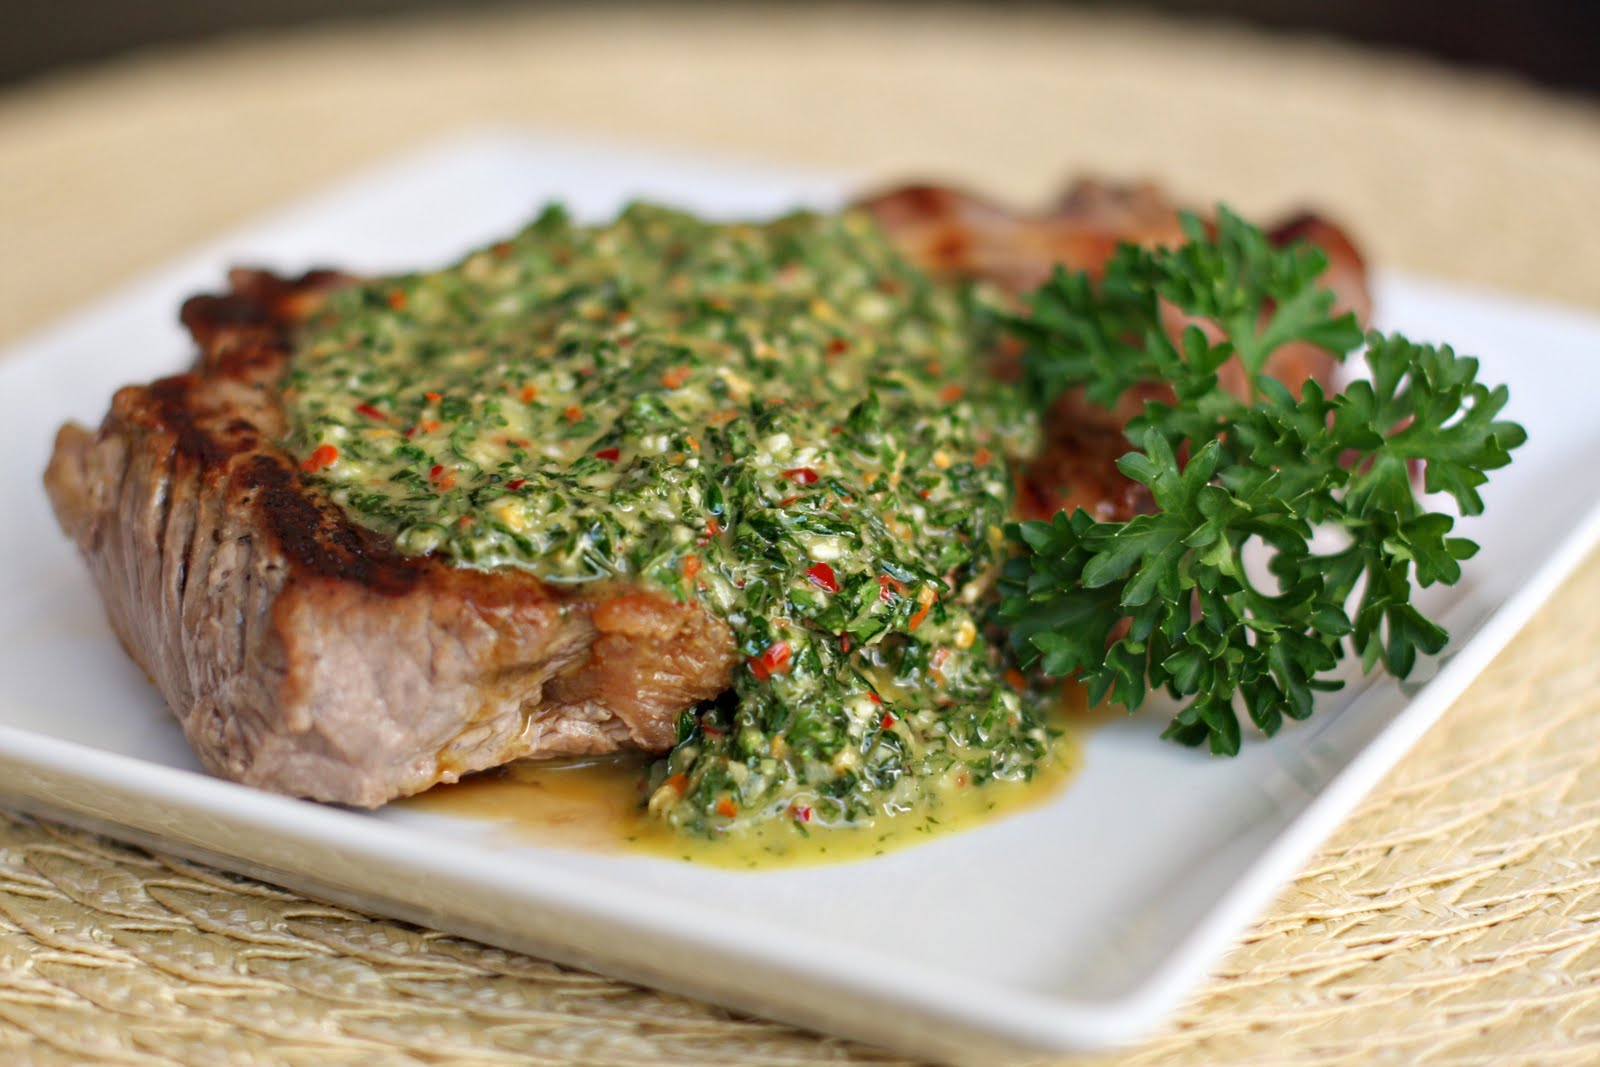 PARSLEY CHIMICHURRI SAUCE